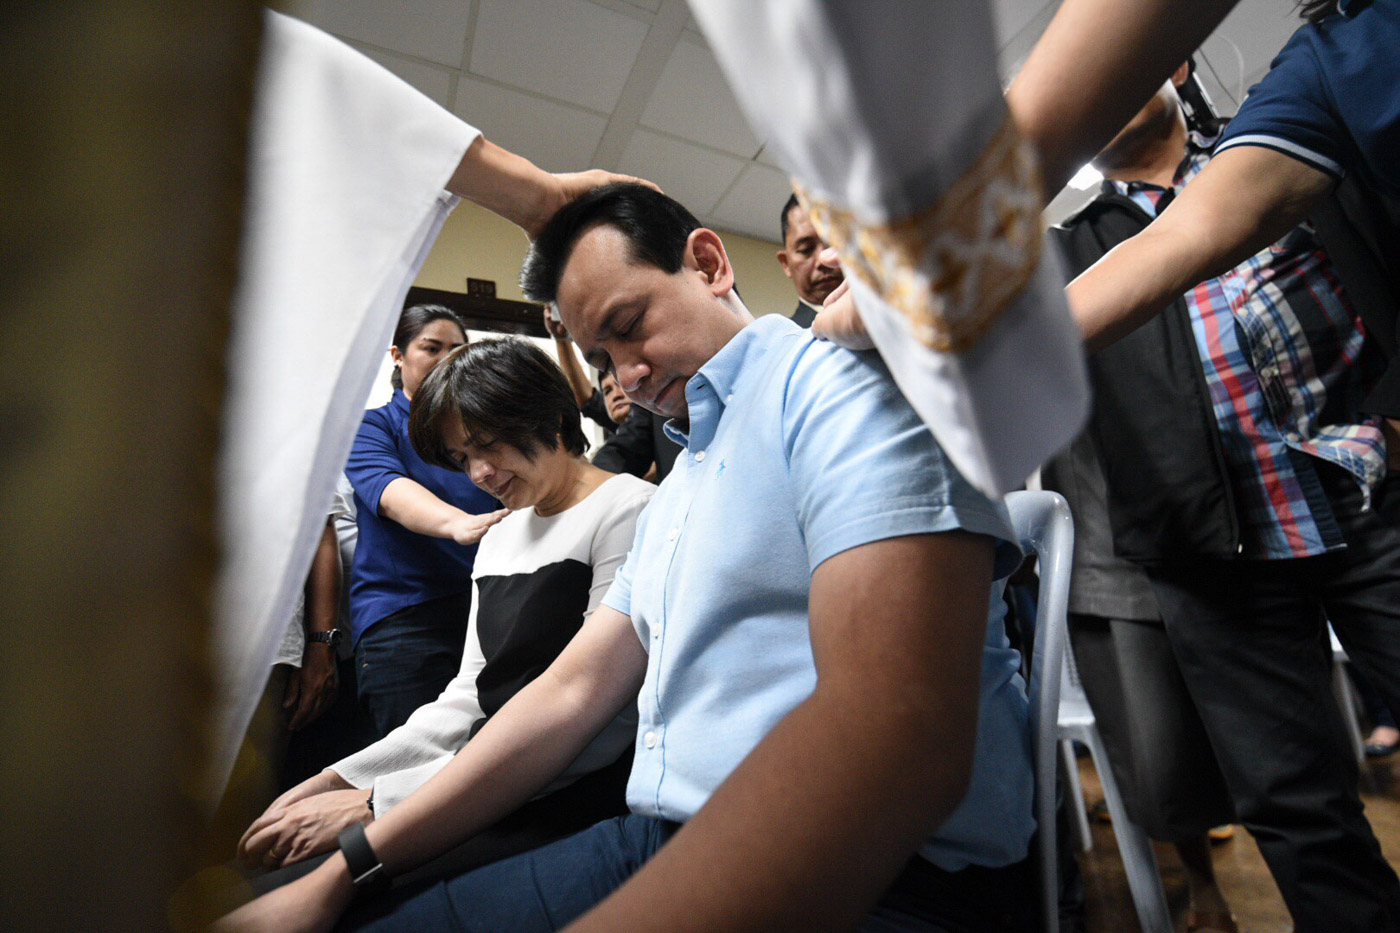 OPPOSITION MARTYR. Supporters of Senator Antonio Trillanes IV gather for a mass followed by a pray-over at the Senate on September 6, 2018. Photo by Alecs Ongcal/Rappler